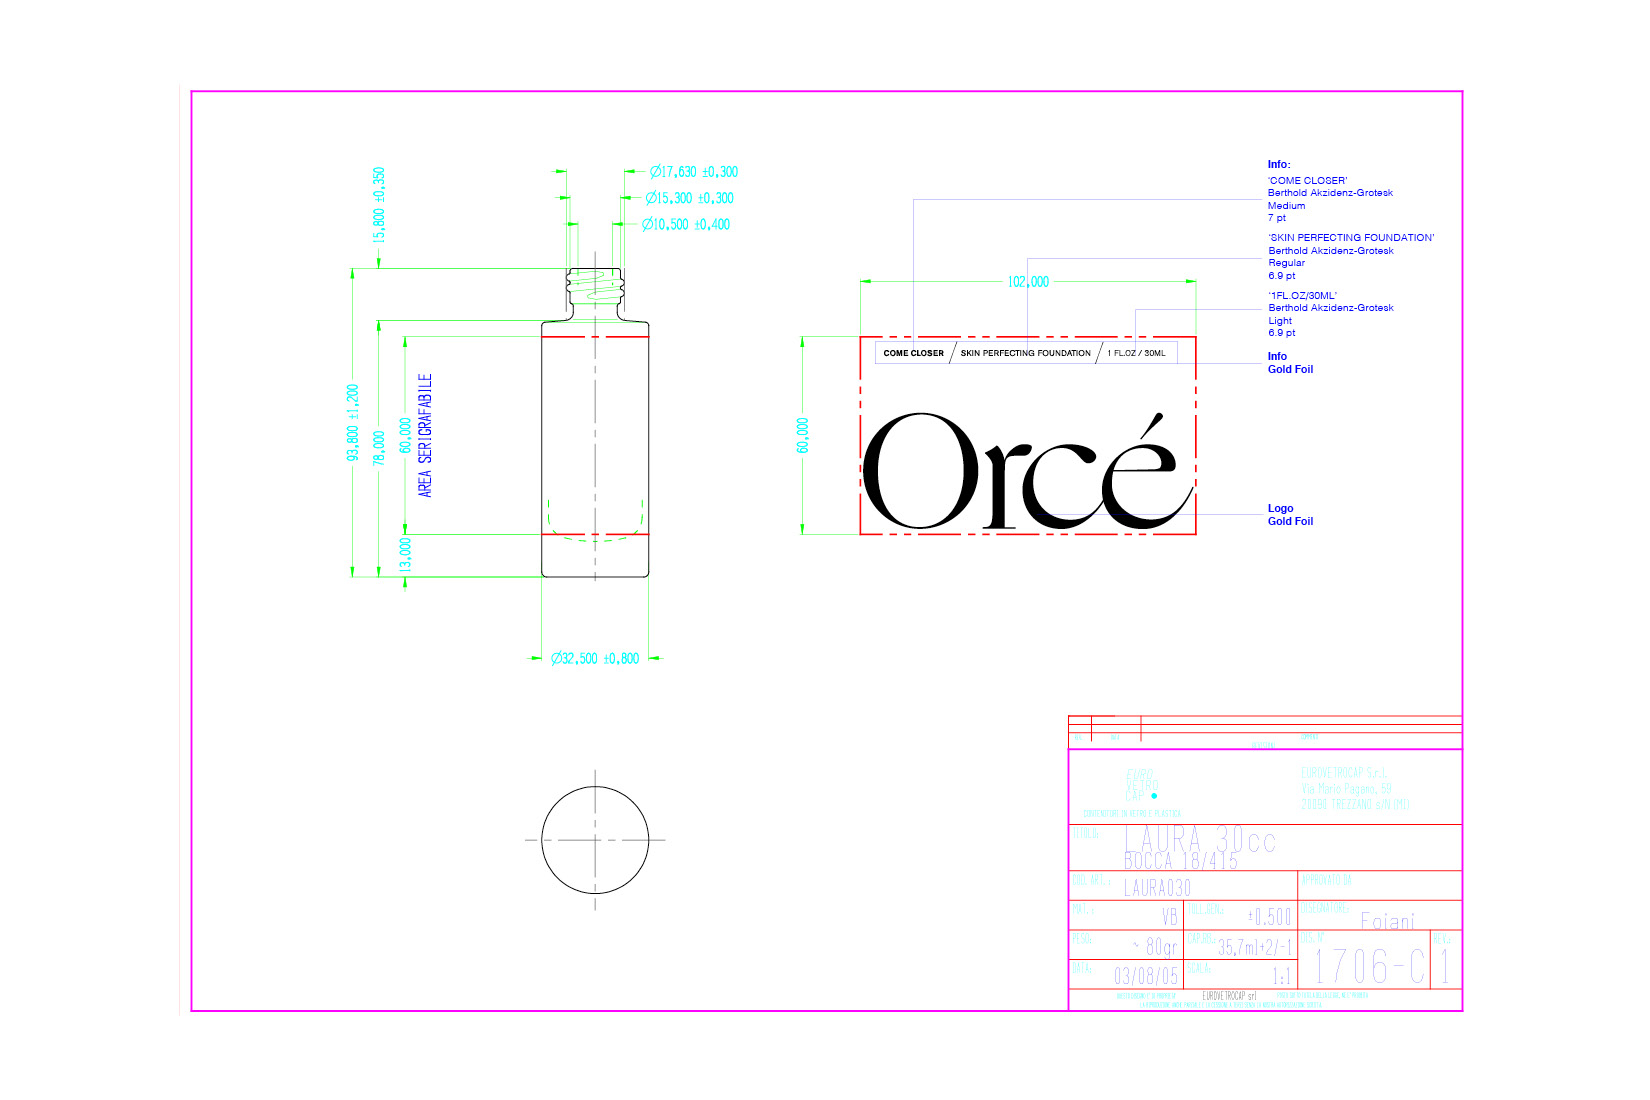 The package and design for Orce's brand that was created and designed by DTE studio.